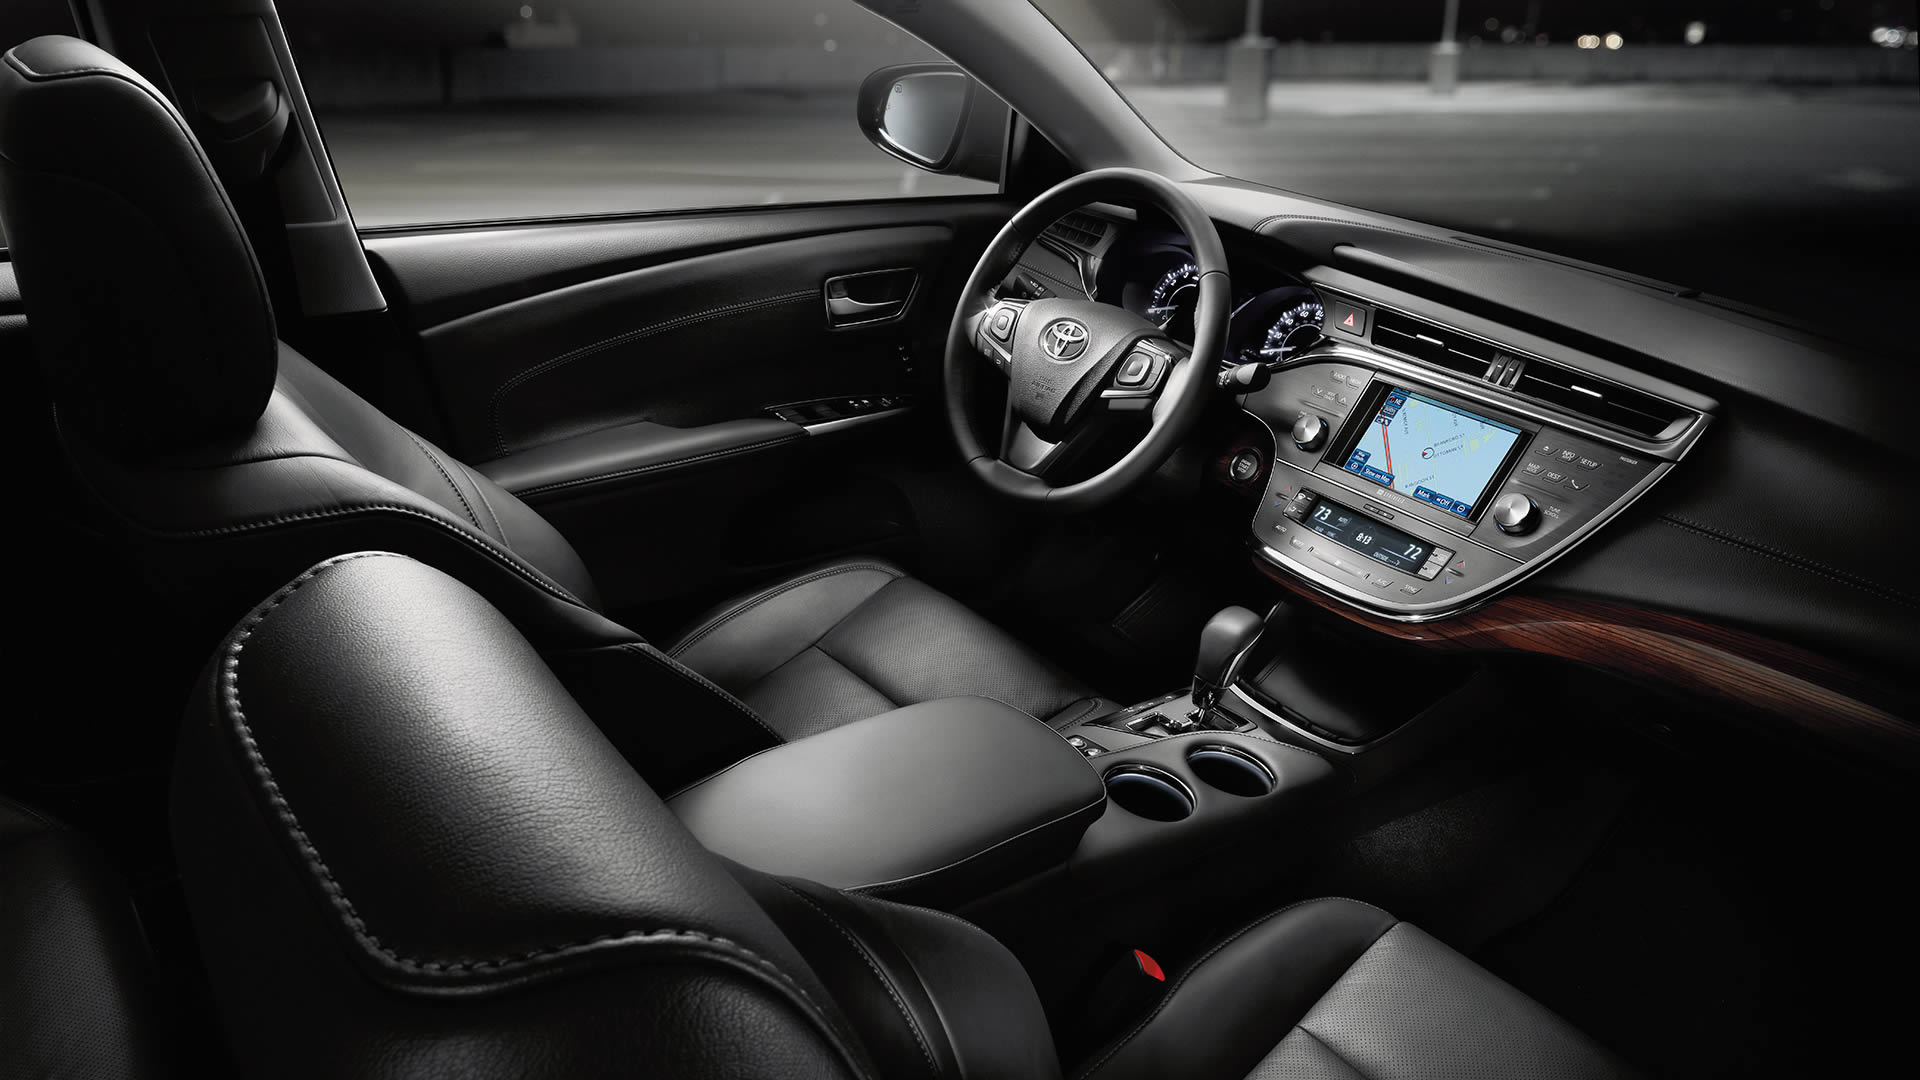 Wonderful Pictures Of Toyota Avalon Iii 2014 #14